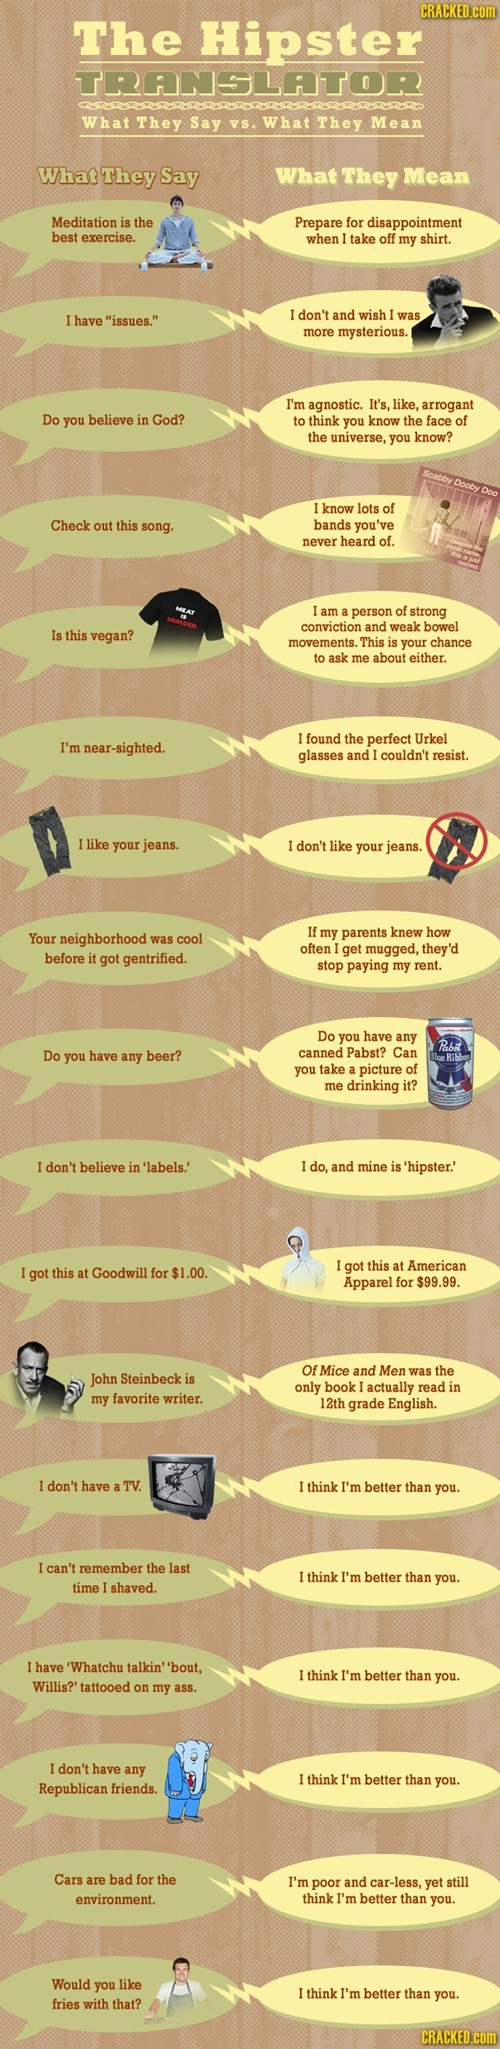 The Hipster Translator